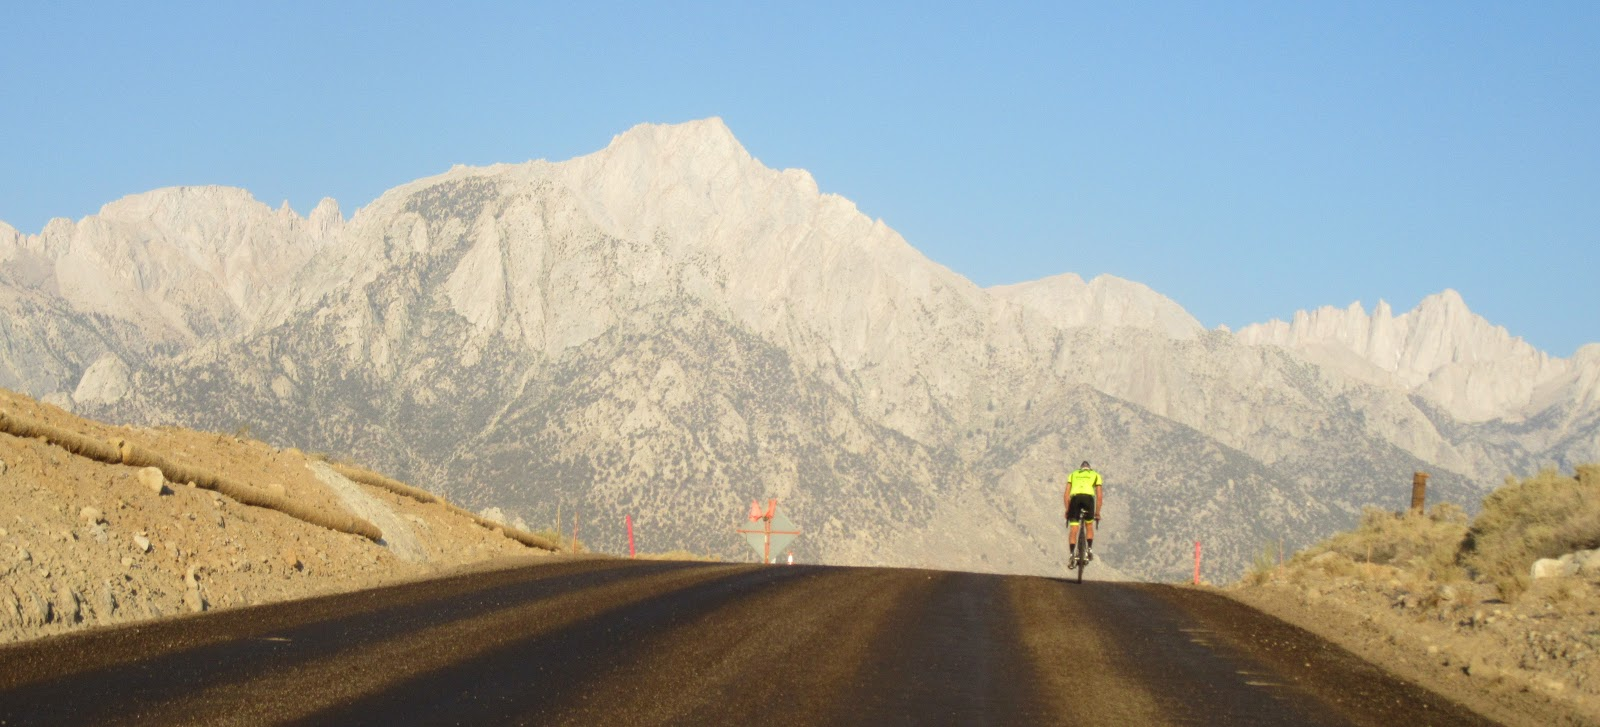 Cyclist on Whitney Portal Road with Mt. Whitney summit in background.